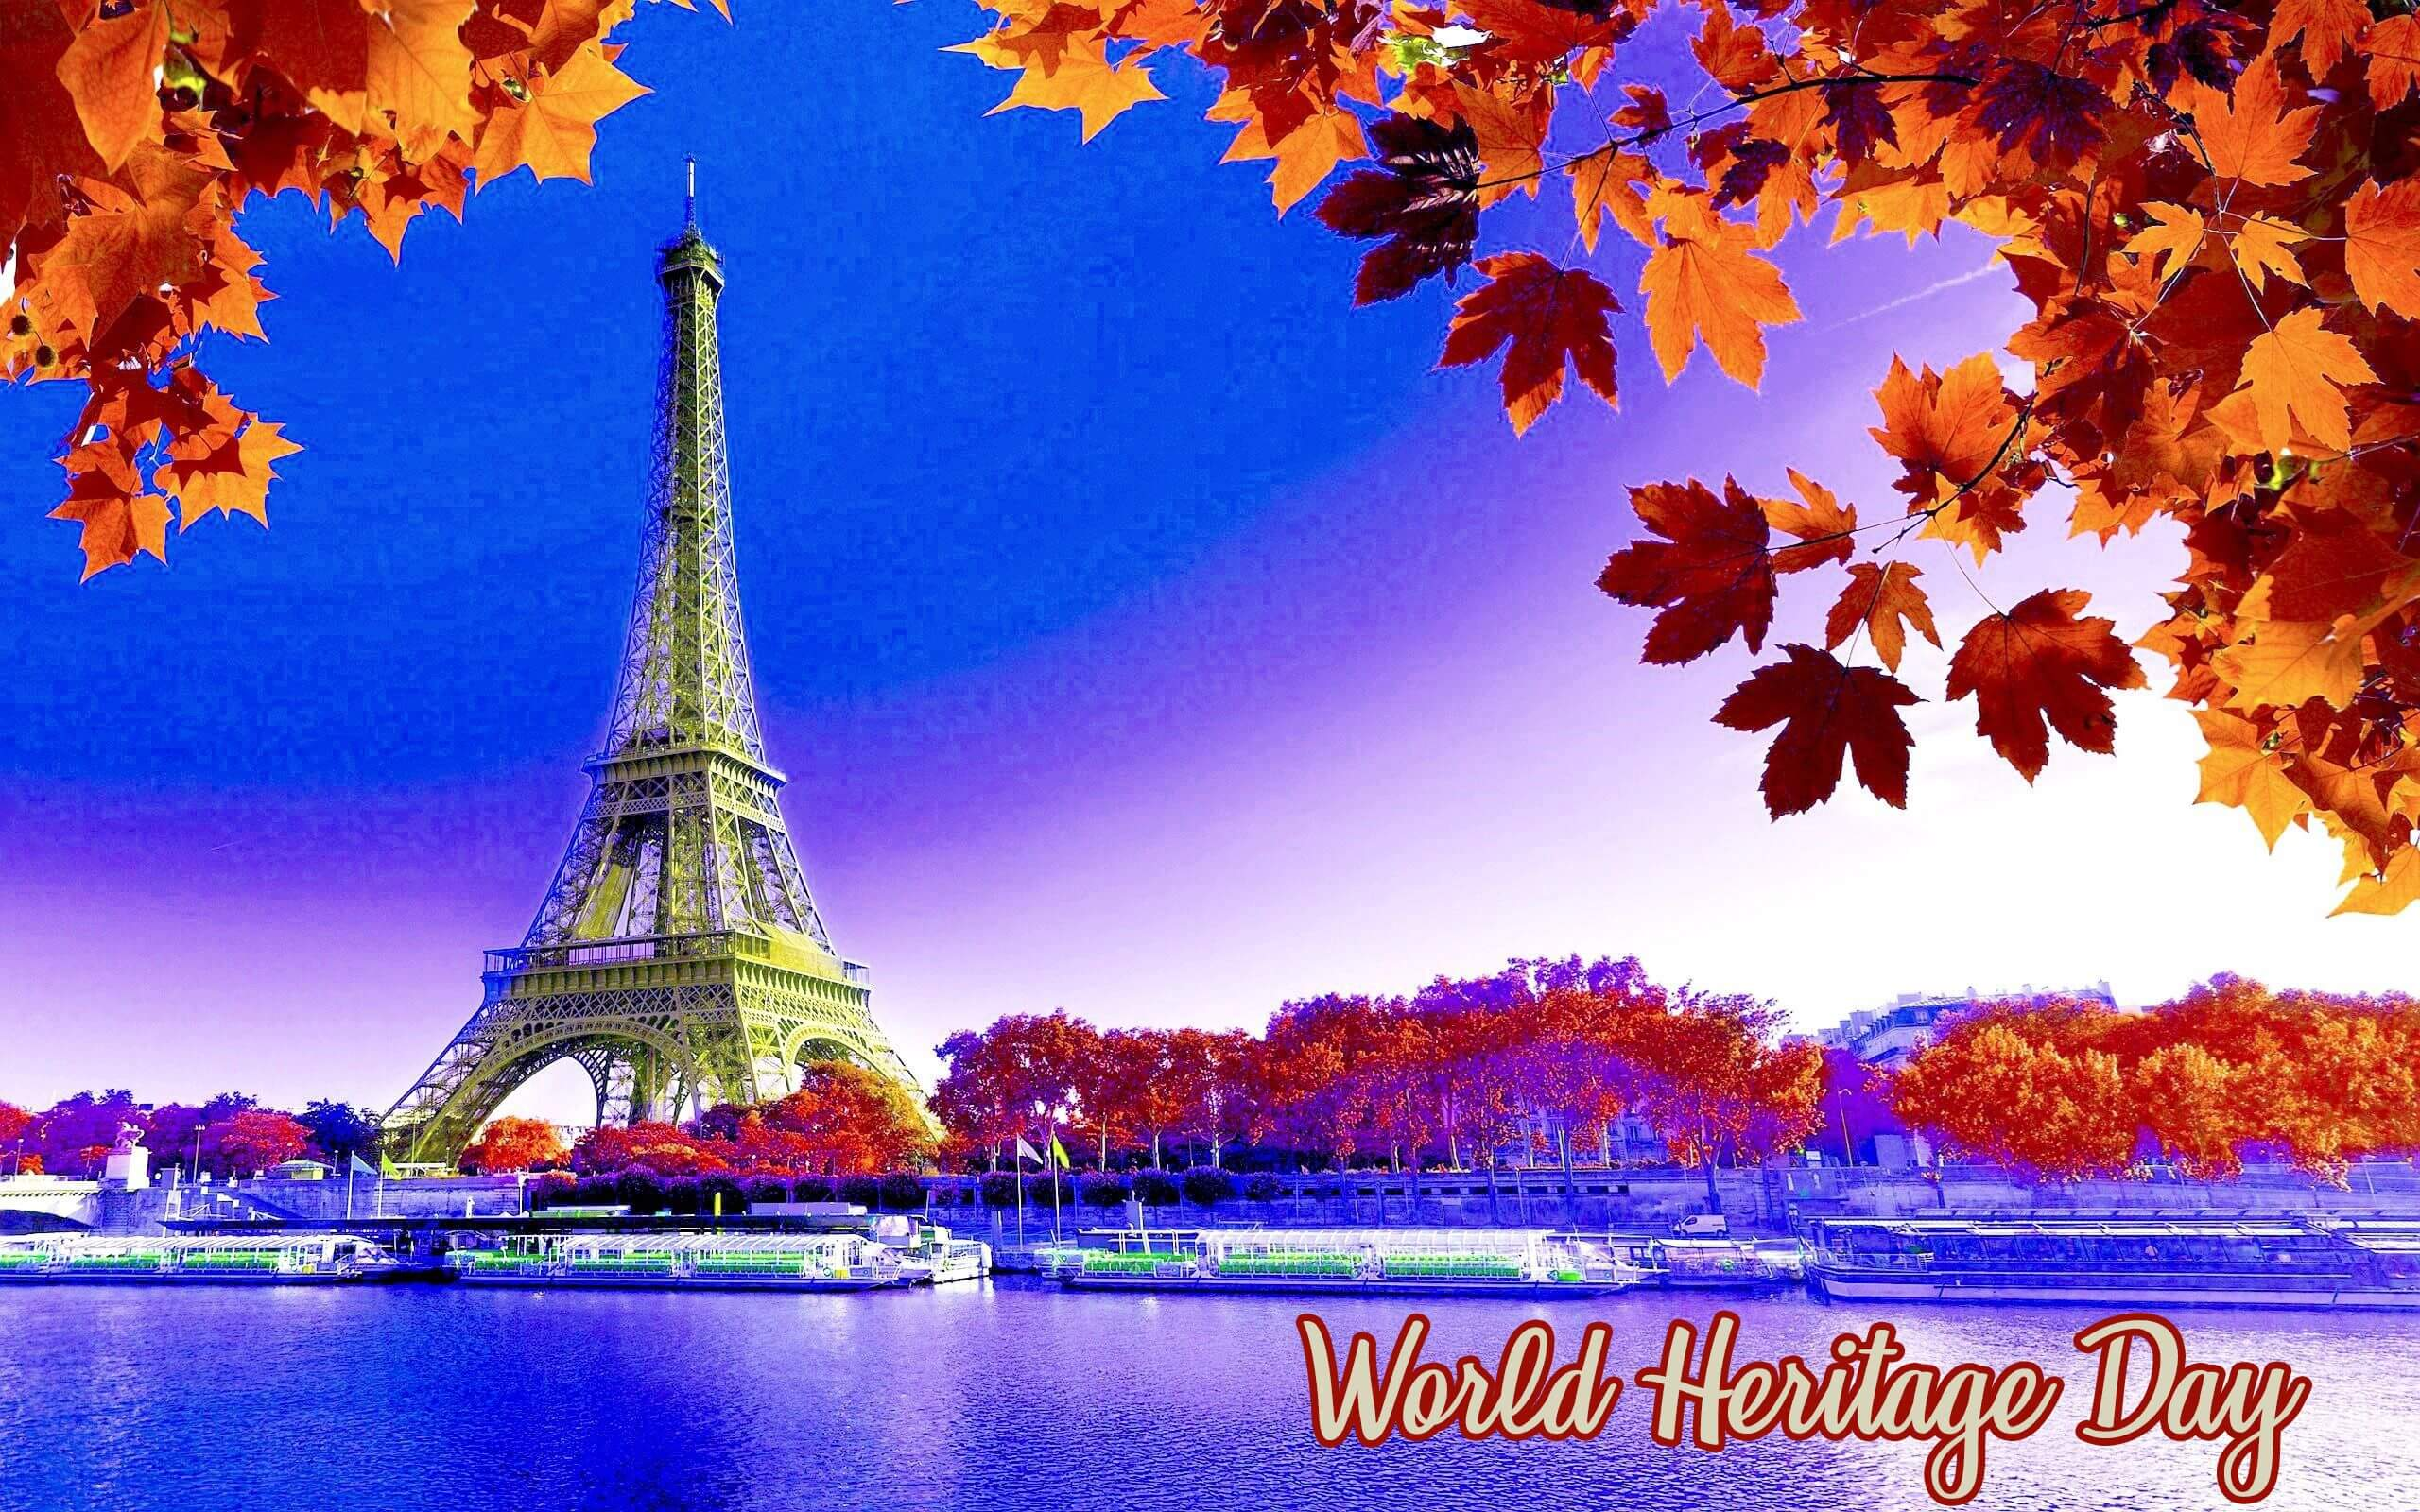 world heritage day monuments eiffel tower autumn sky water boats wallpaper